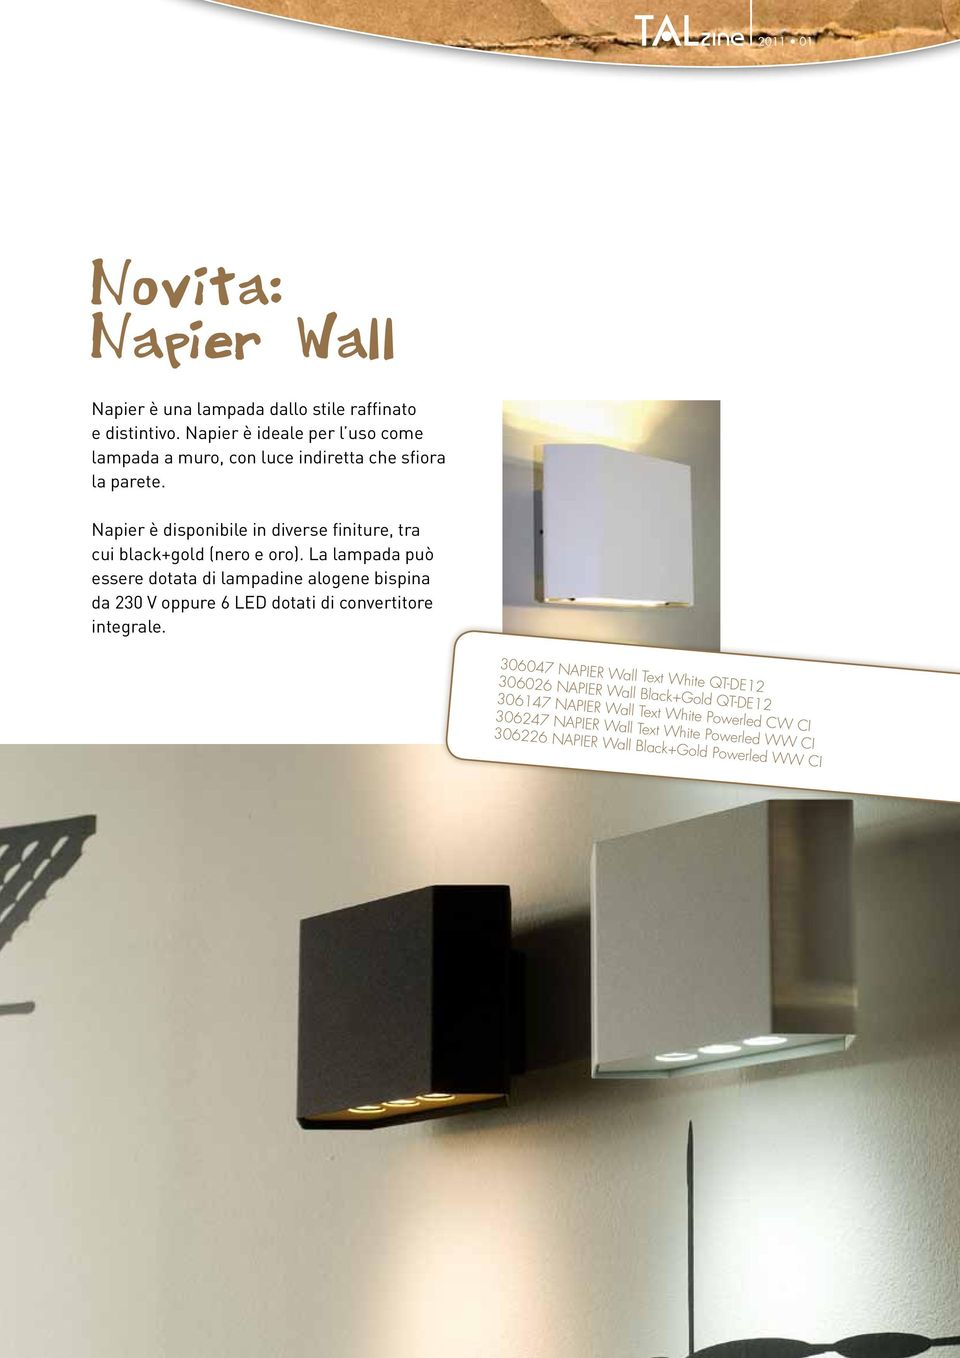 Napier è disponibile in diverse finiture, tra cui black+gold (nero e oro).